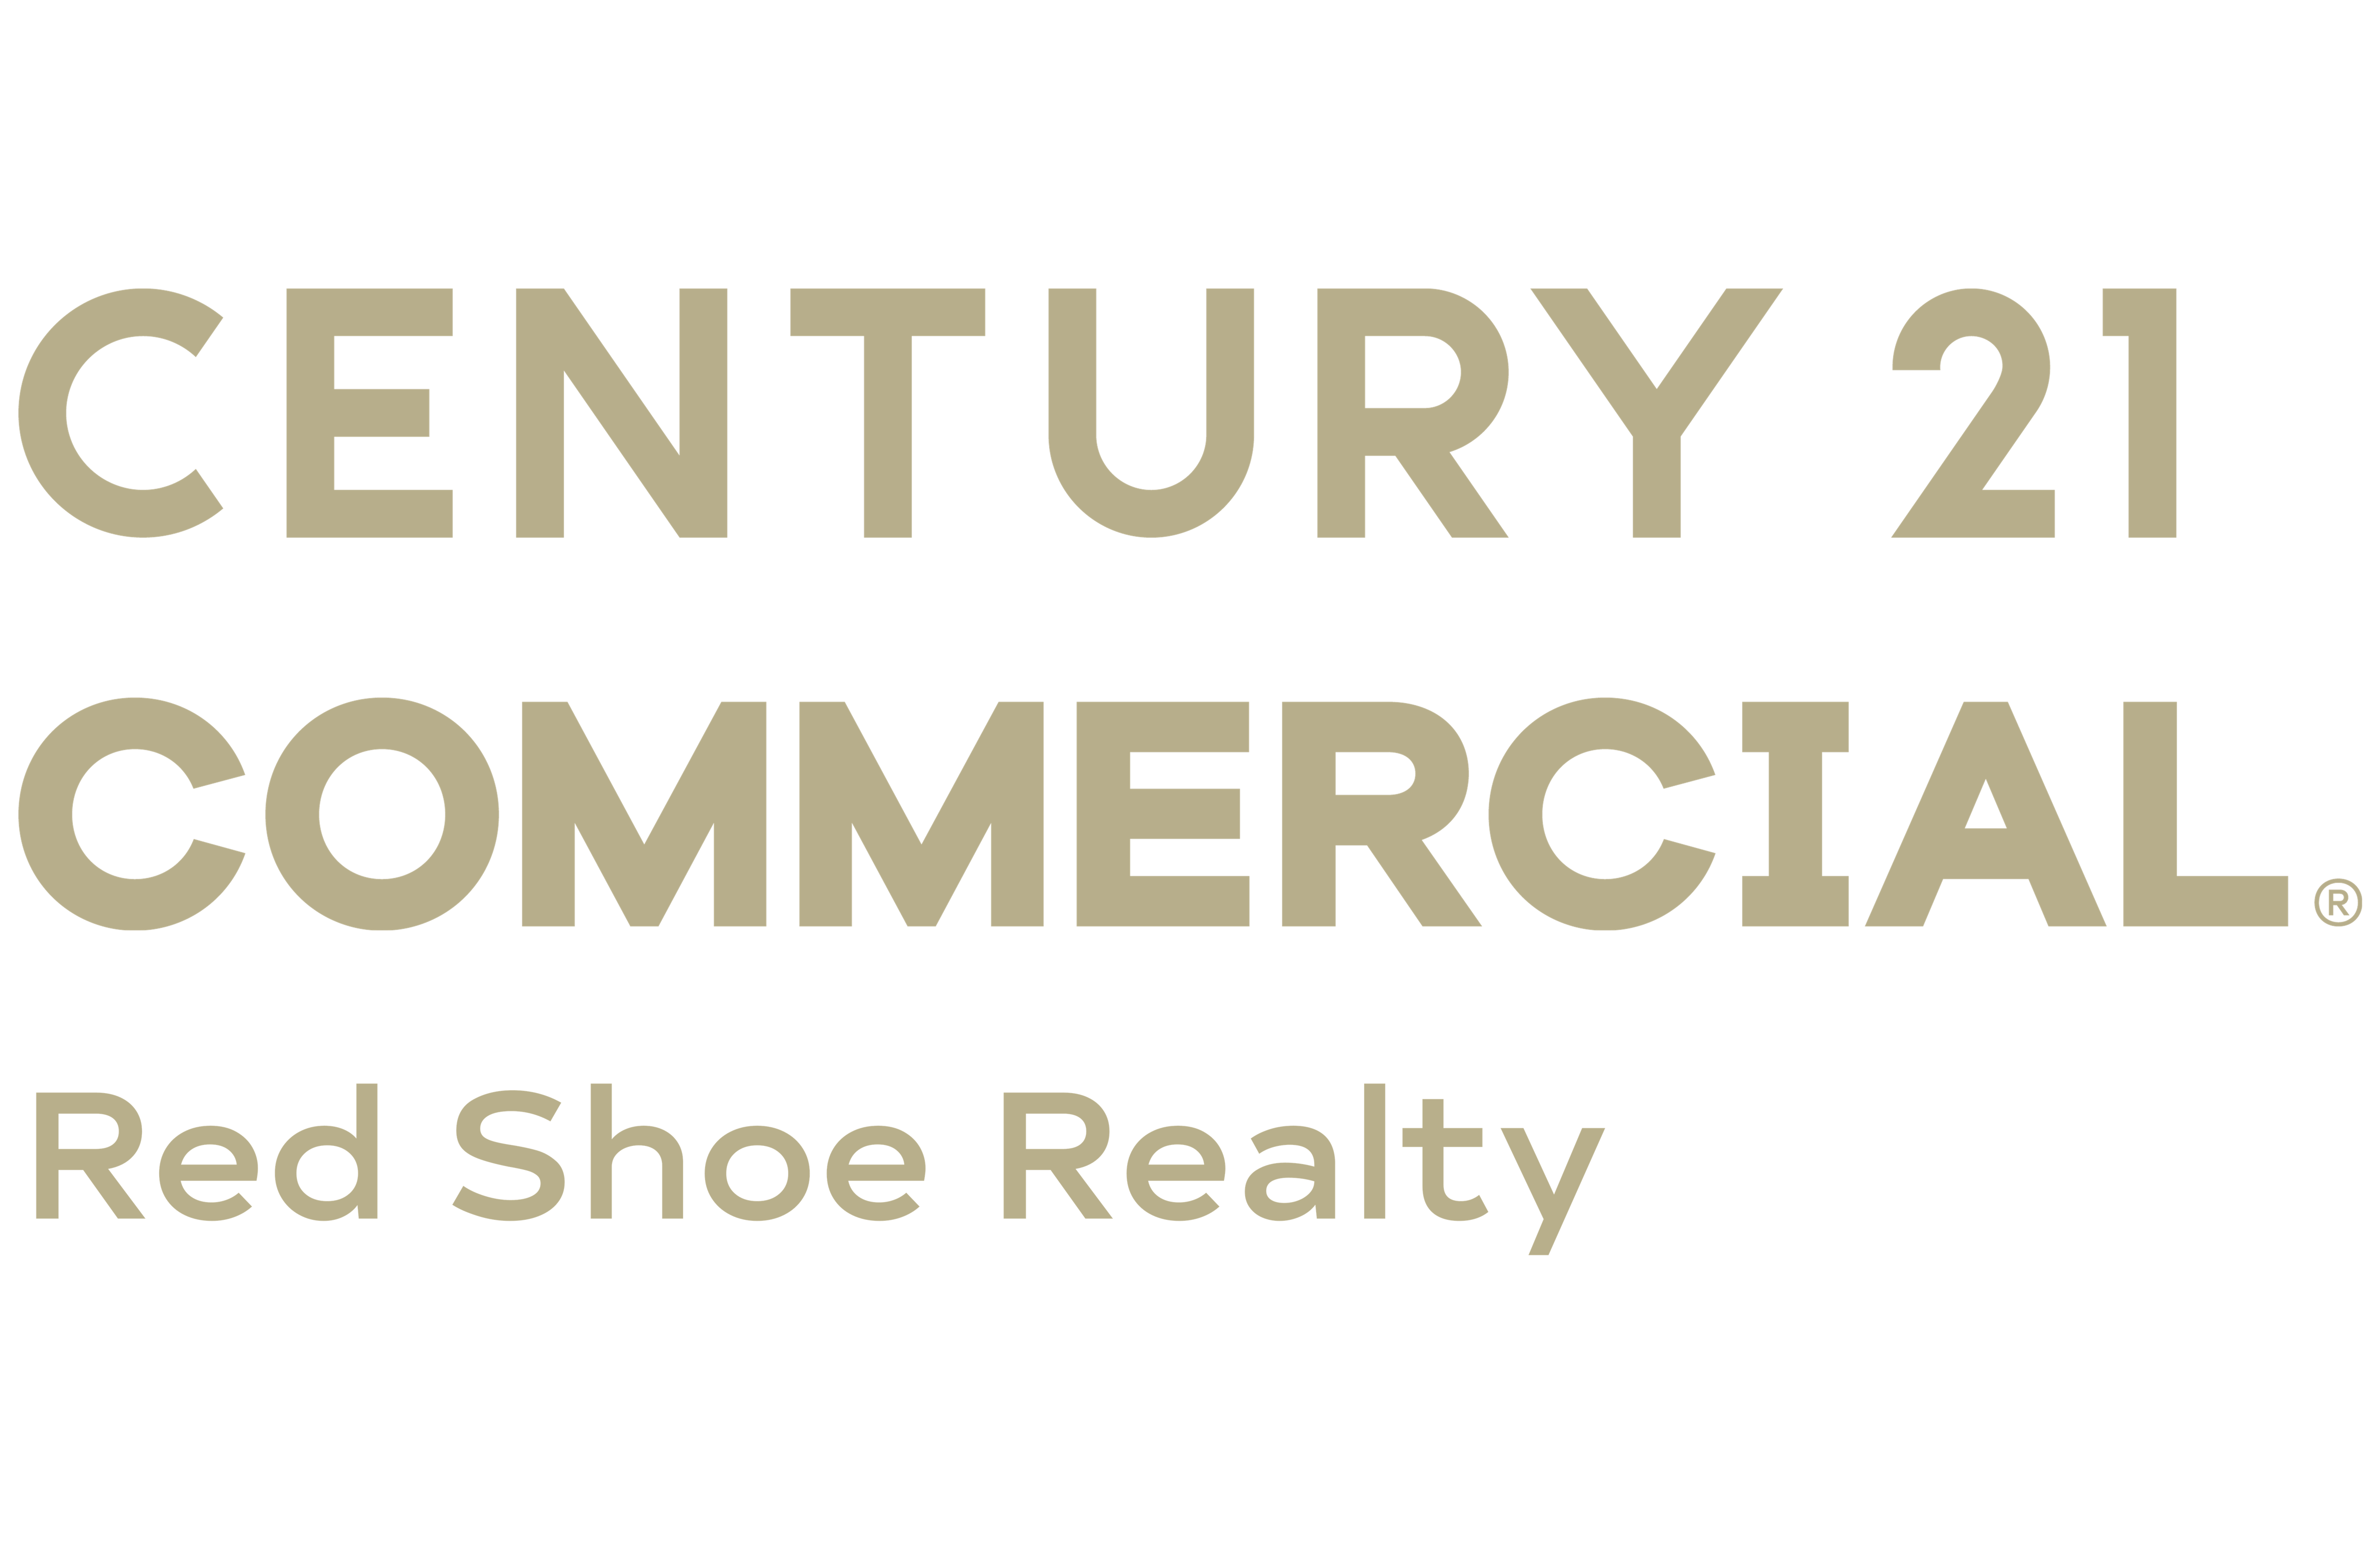 Jeff Dittrich of CENTURY 21 Red Shoe Realty logo